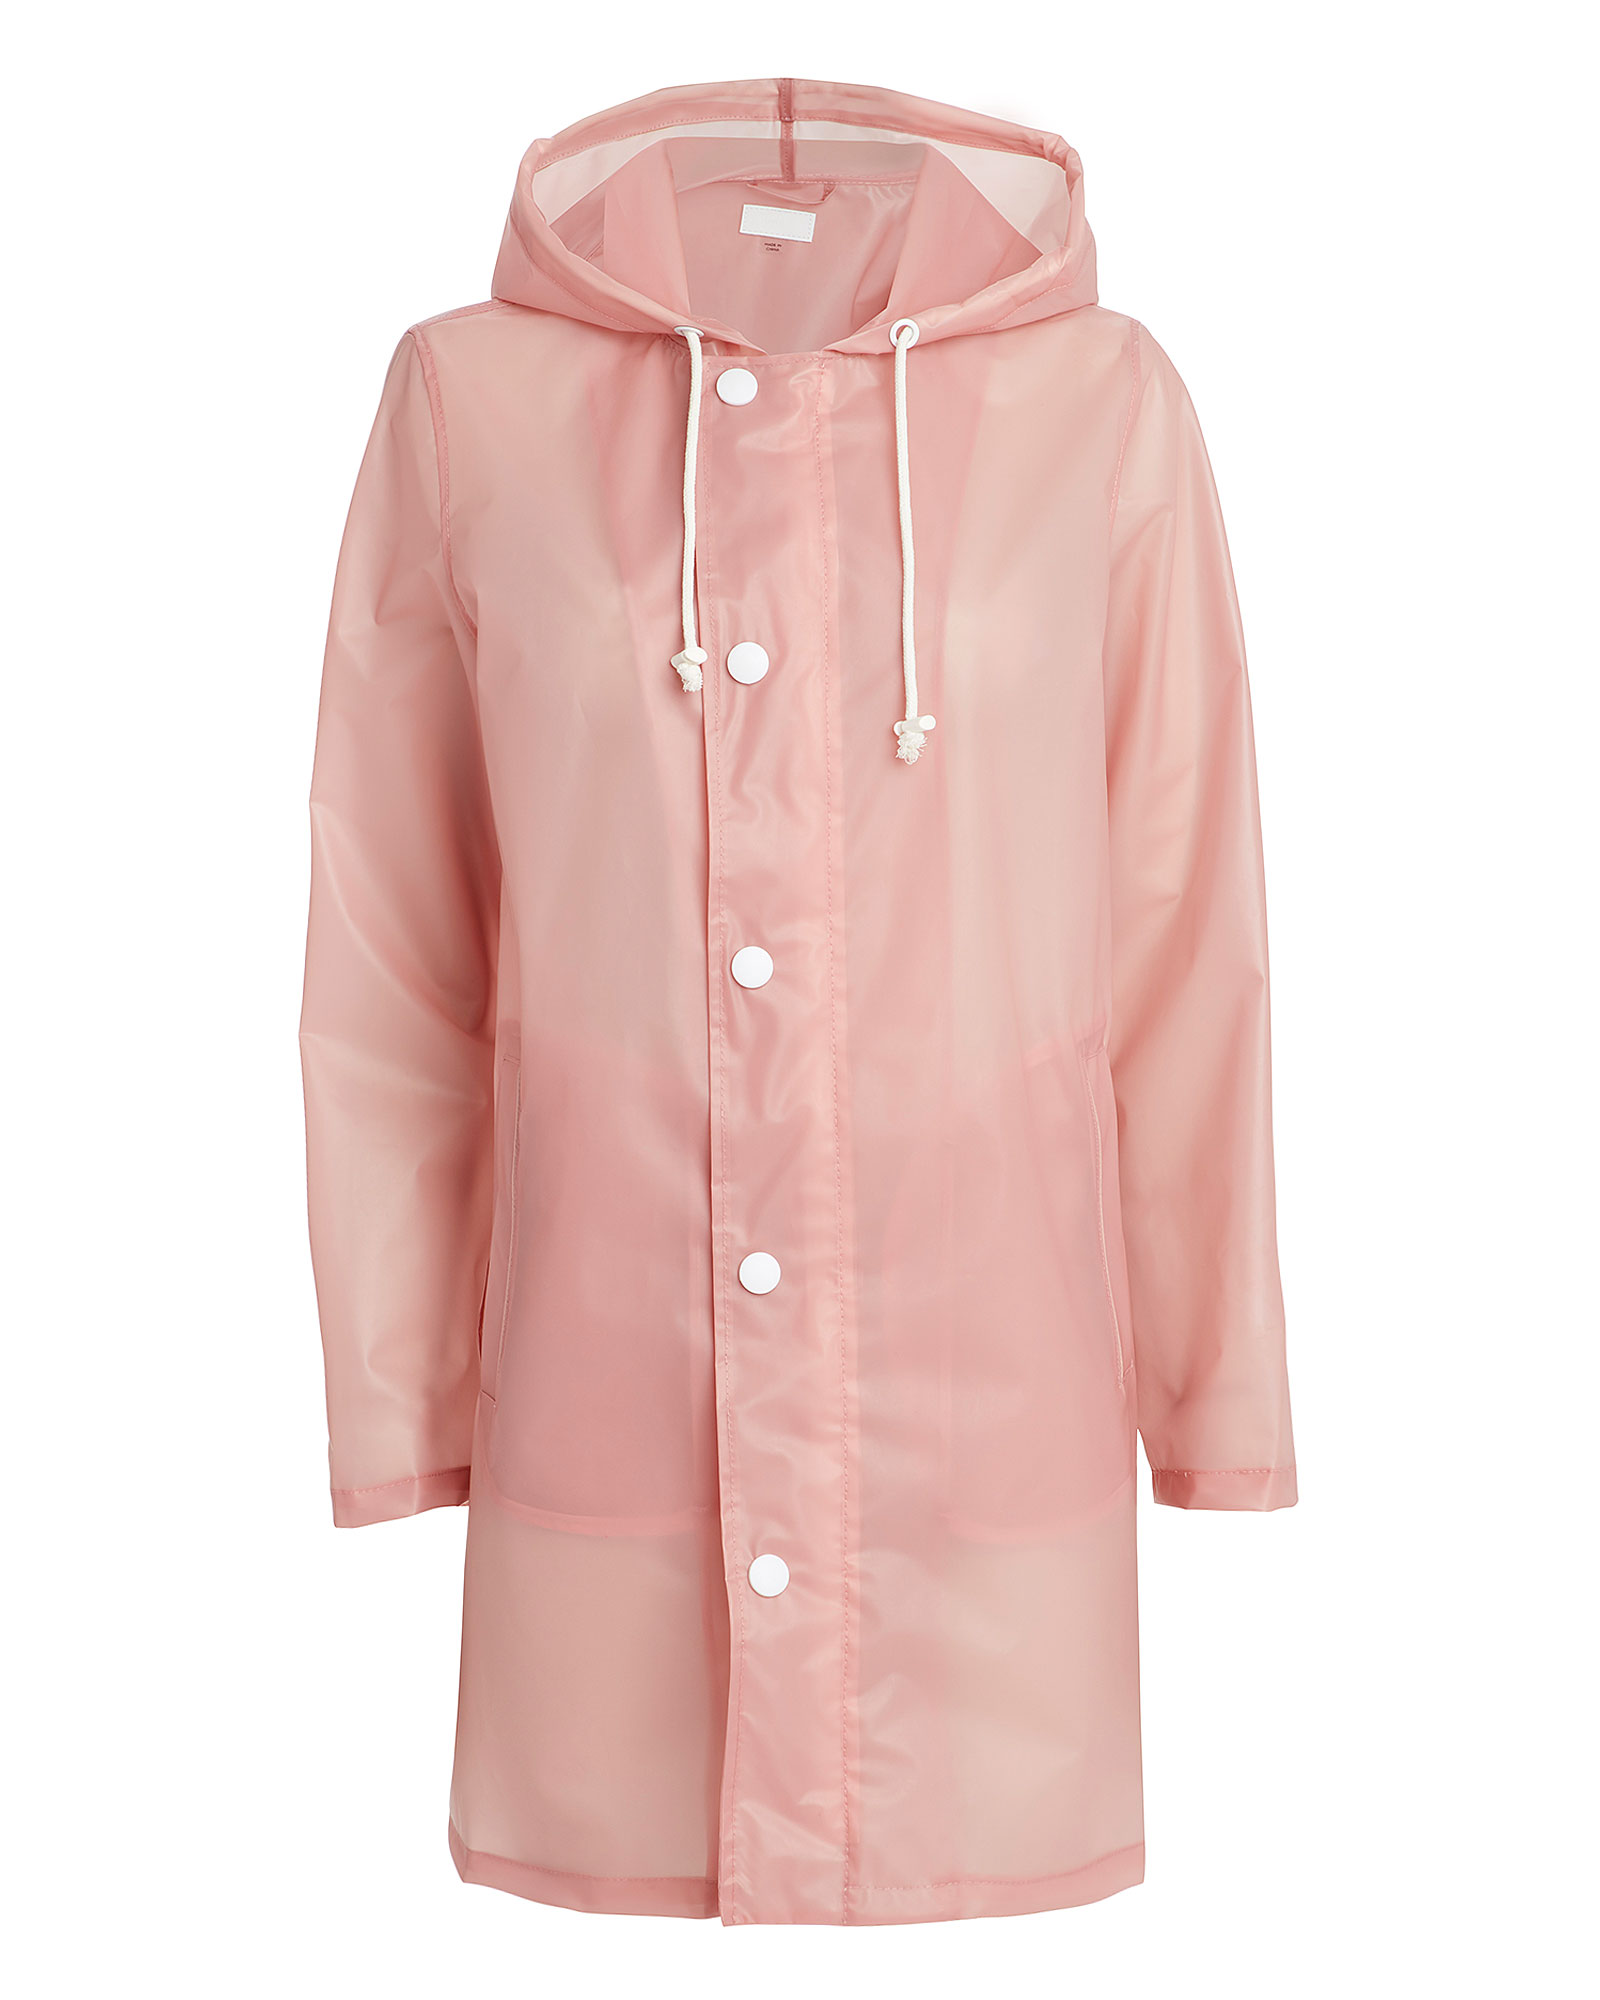 Mother Coats Pitter Patter Pink Raincoat